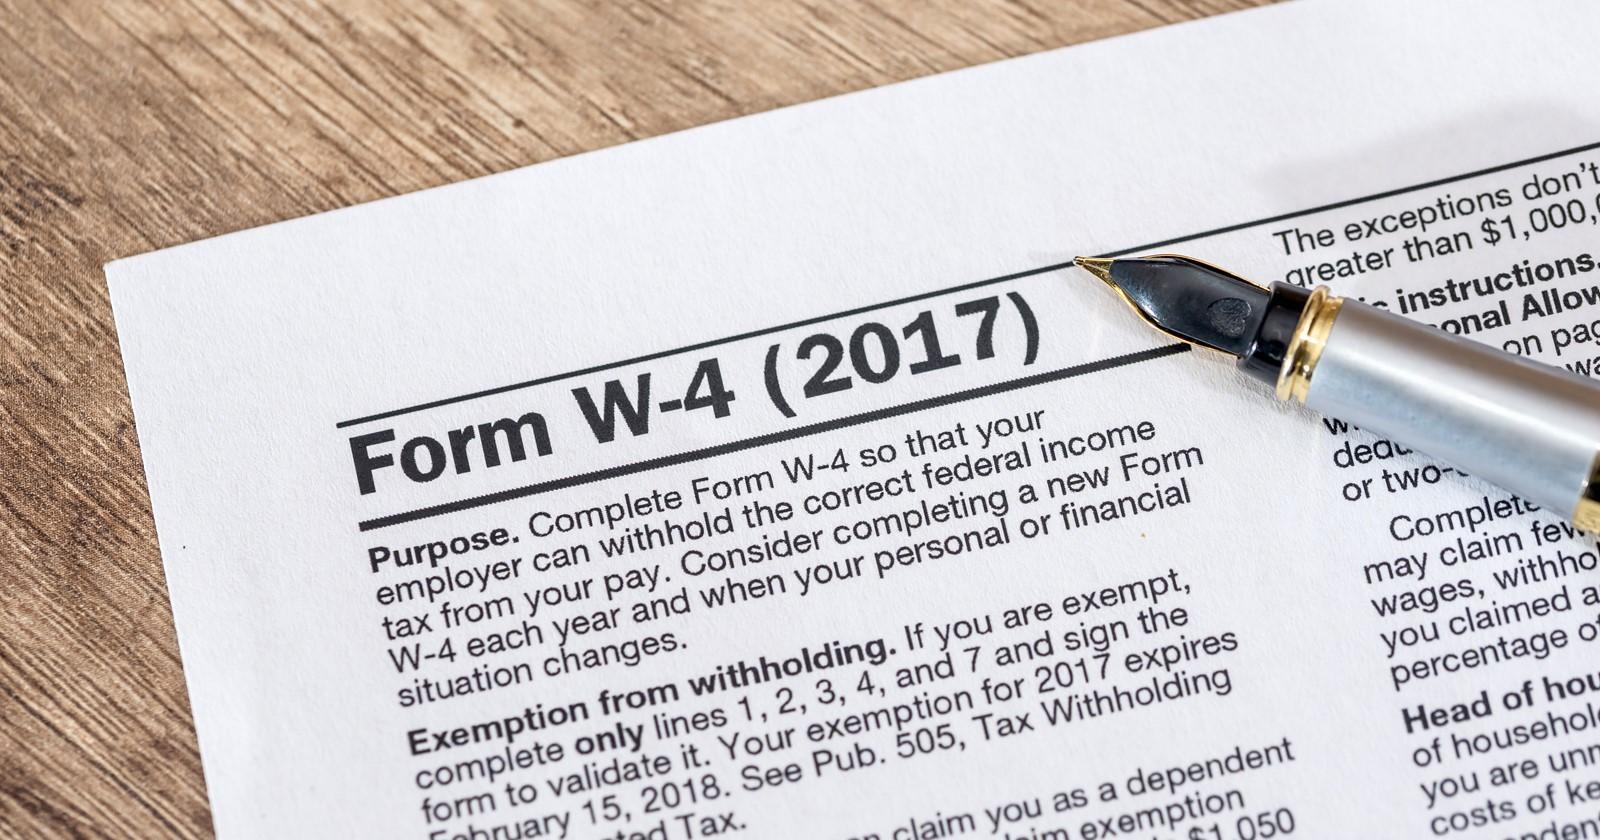 Irs Issues Revised Form W 4 For